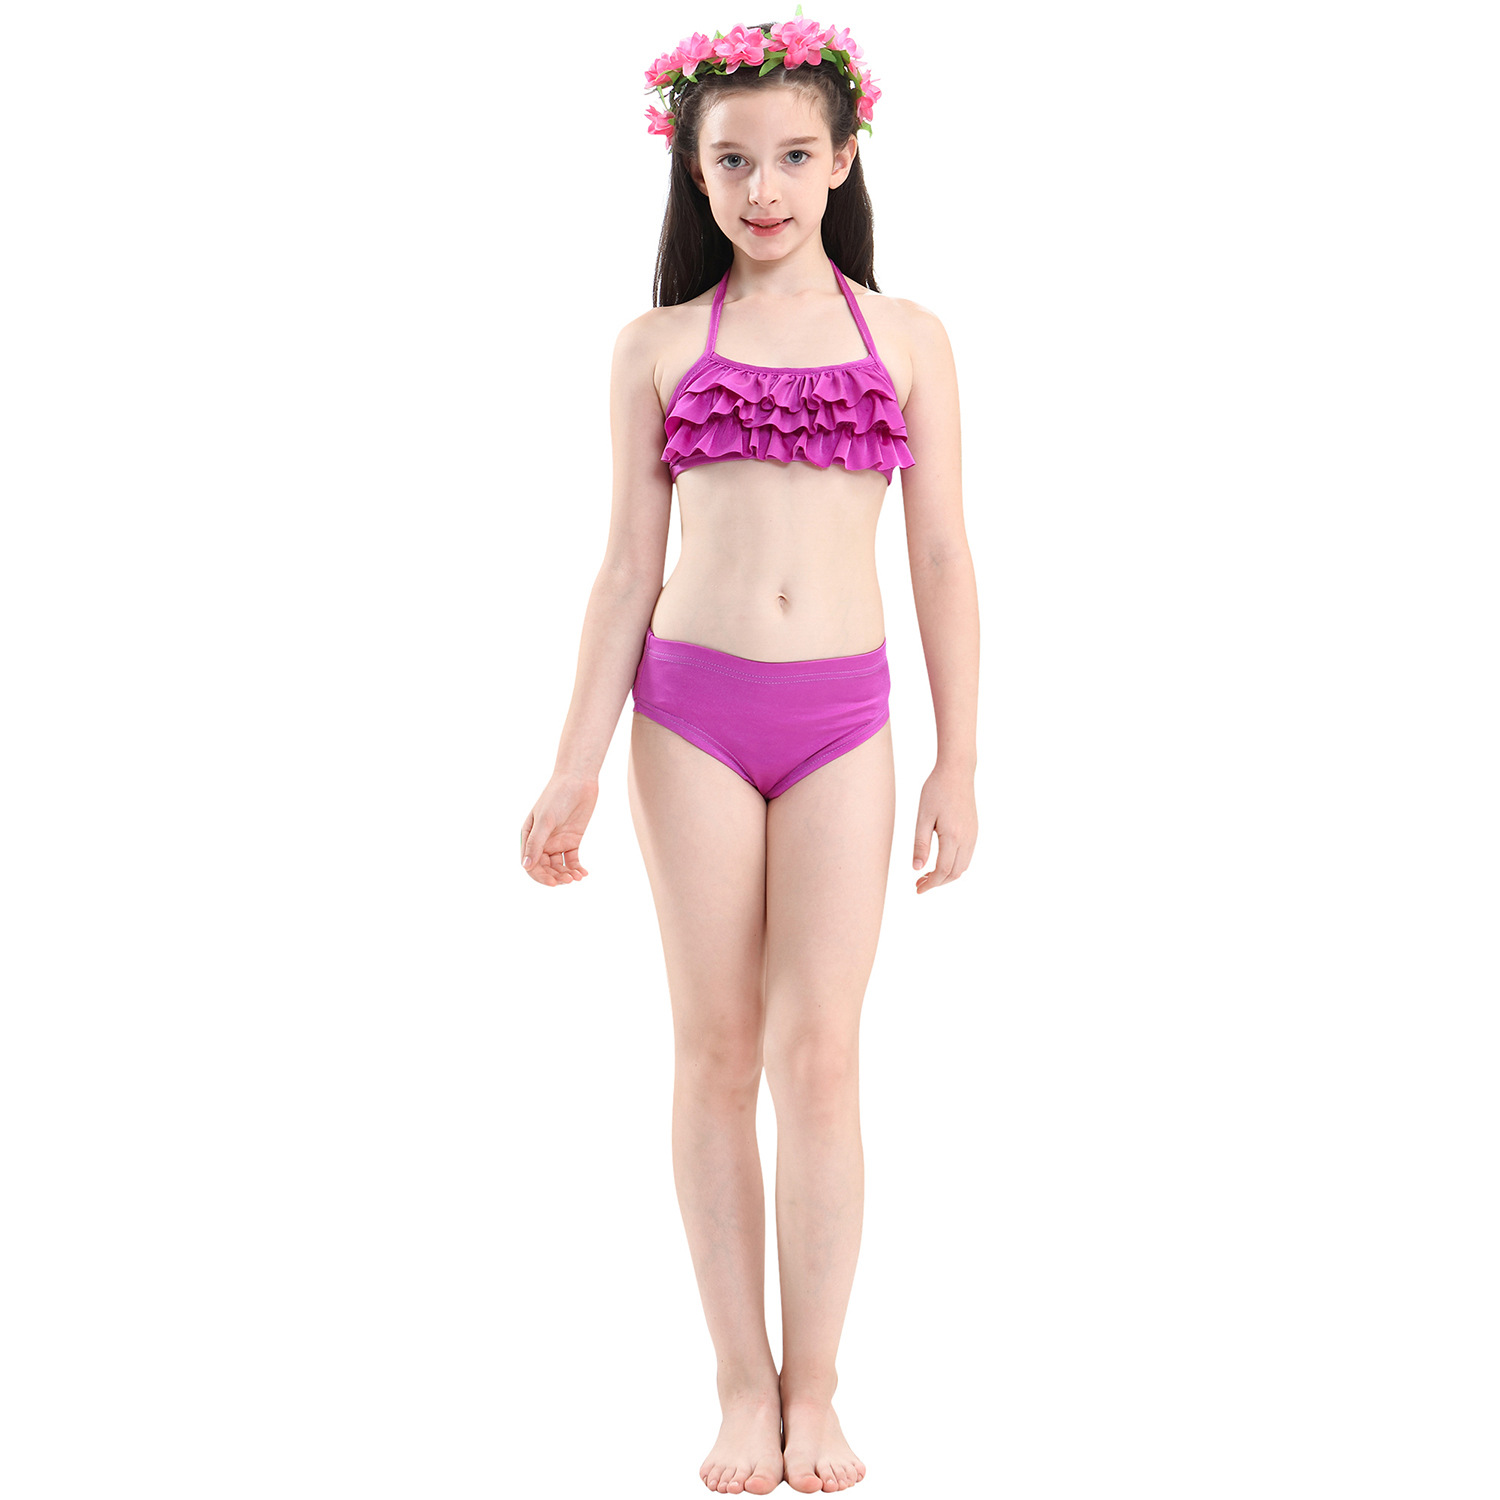 9258246129 898390851 - 4PCS/Set HOT Kids Girls Mermaid Tails with Fin Swimsuit Bikini Bathing Suit Dress for Girls With Flipper Monofin For Swim